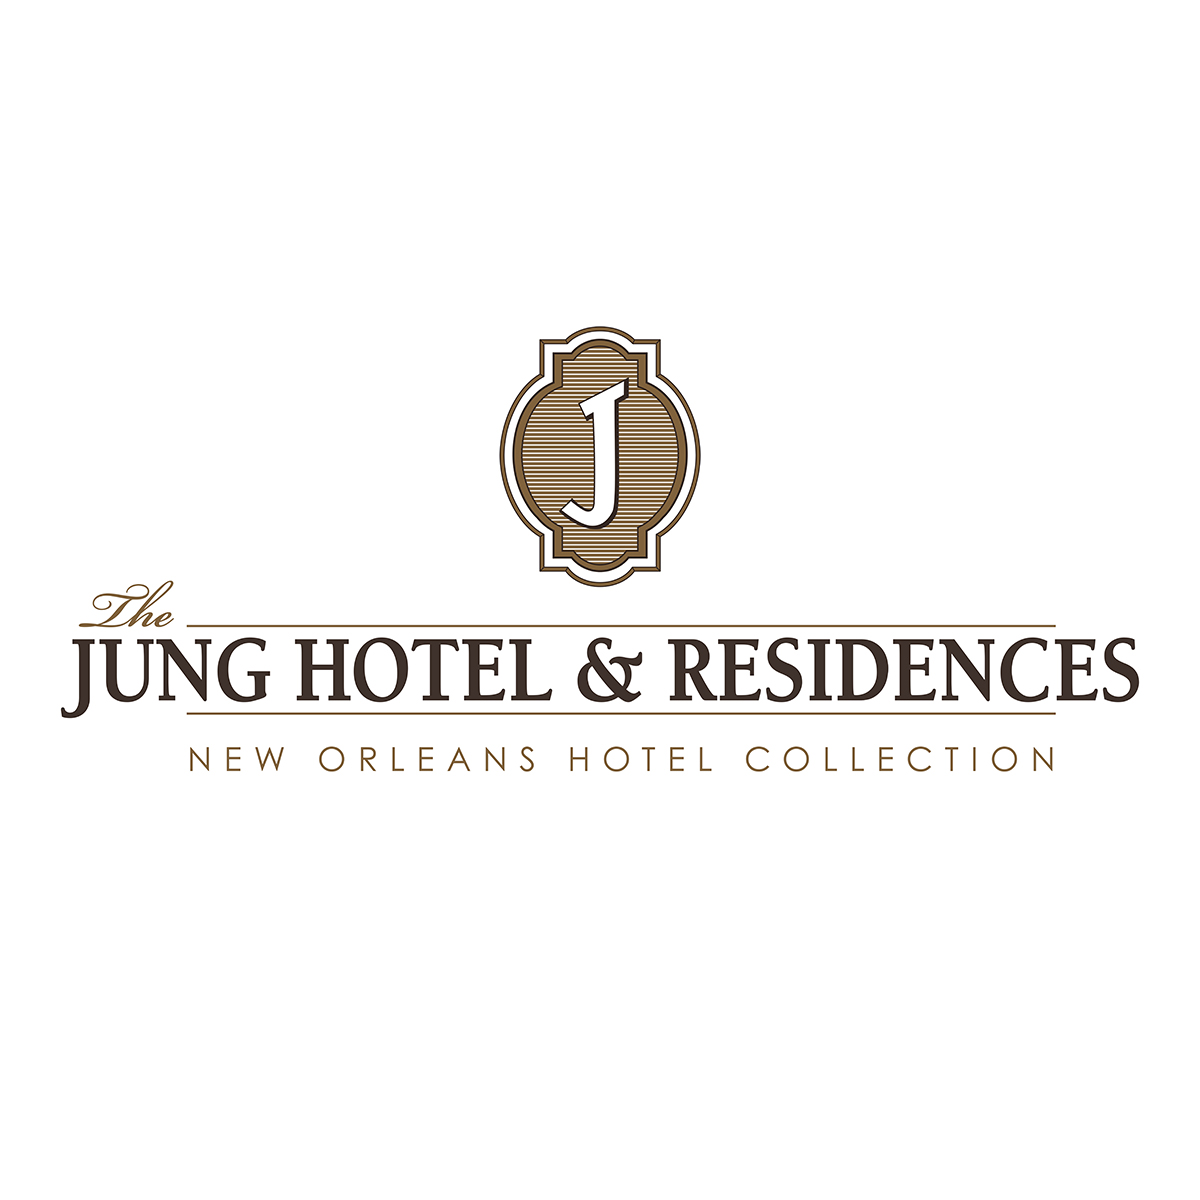 The Jung Hotel & Residences